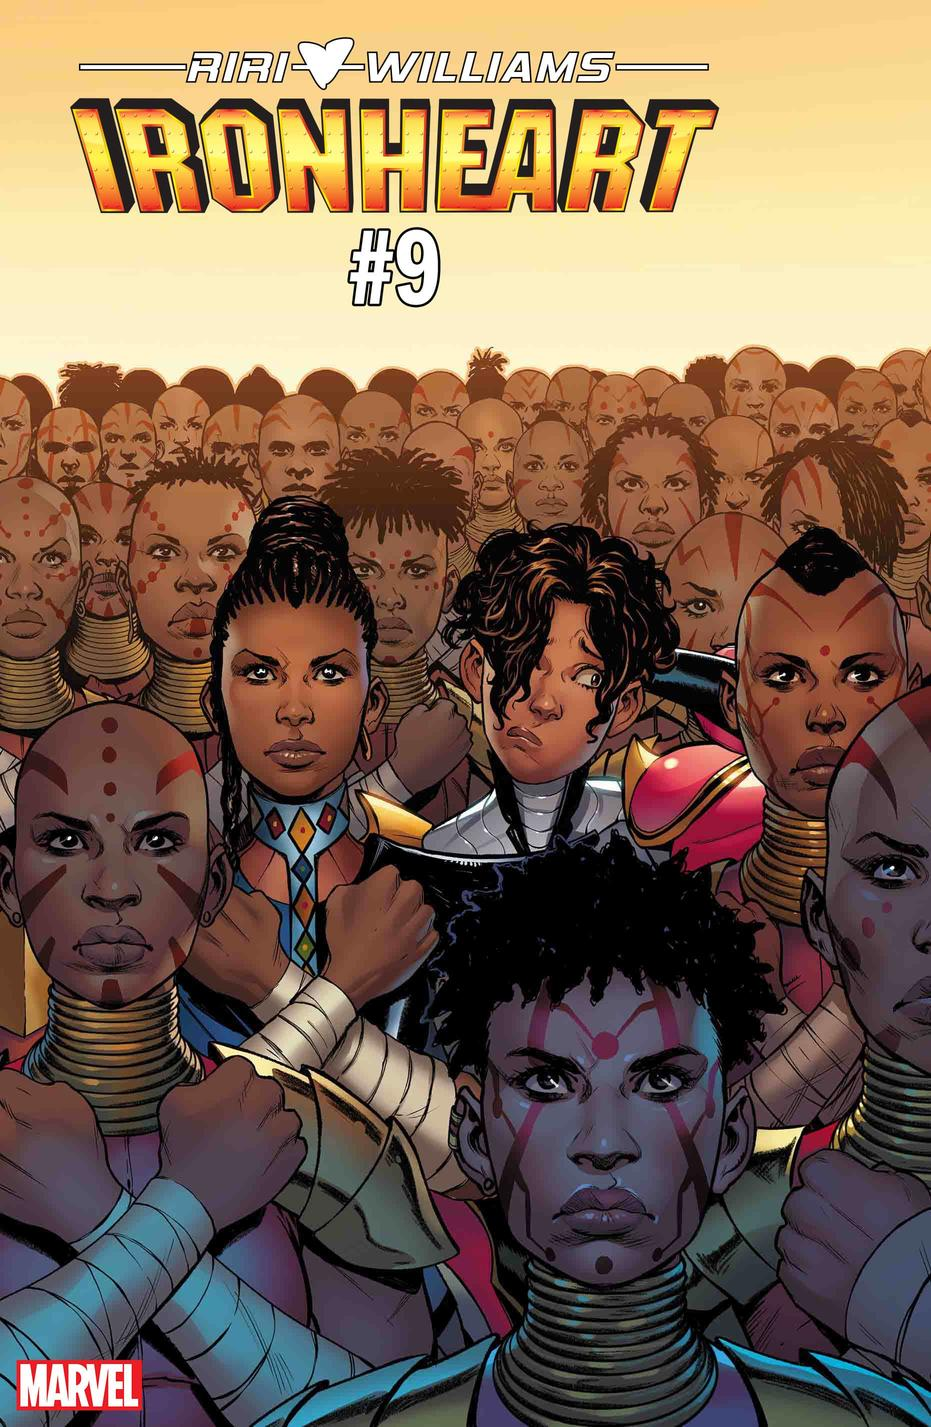 Image result for riri williams ironheart eve ewing